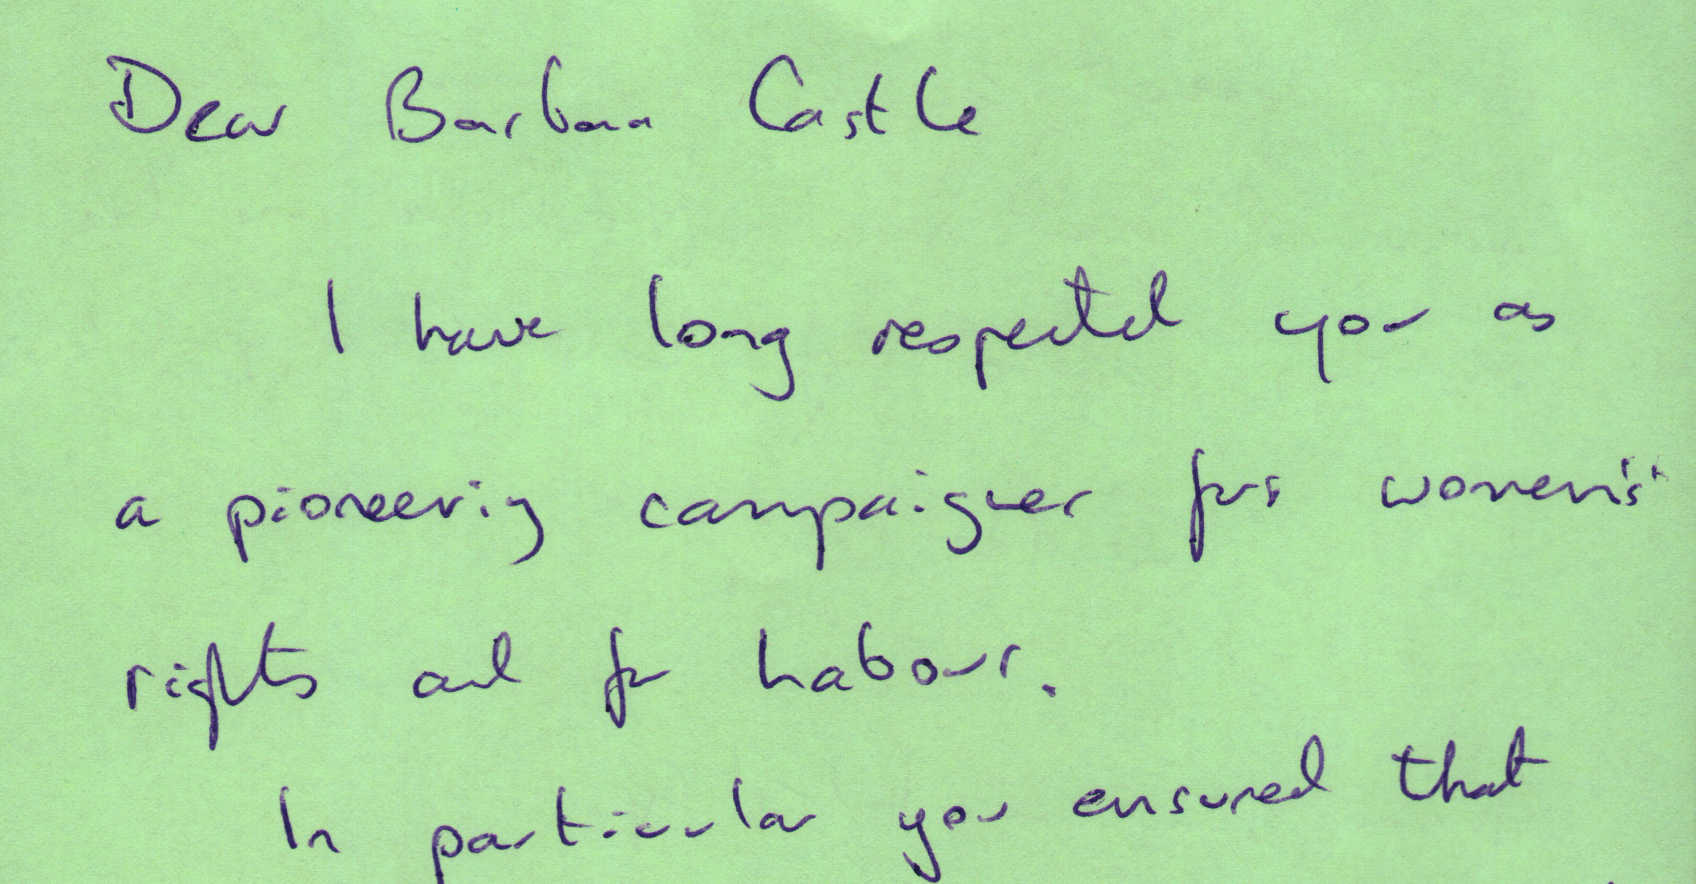 Letter to Barbara Castle from Keith Westley